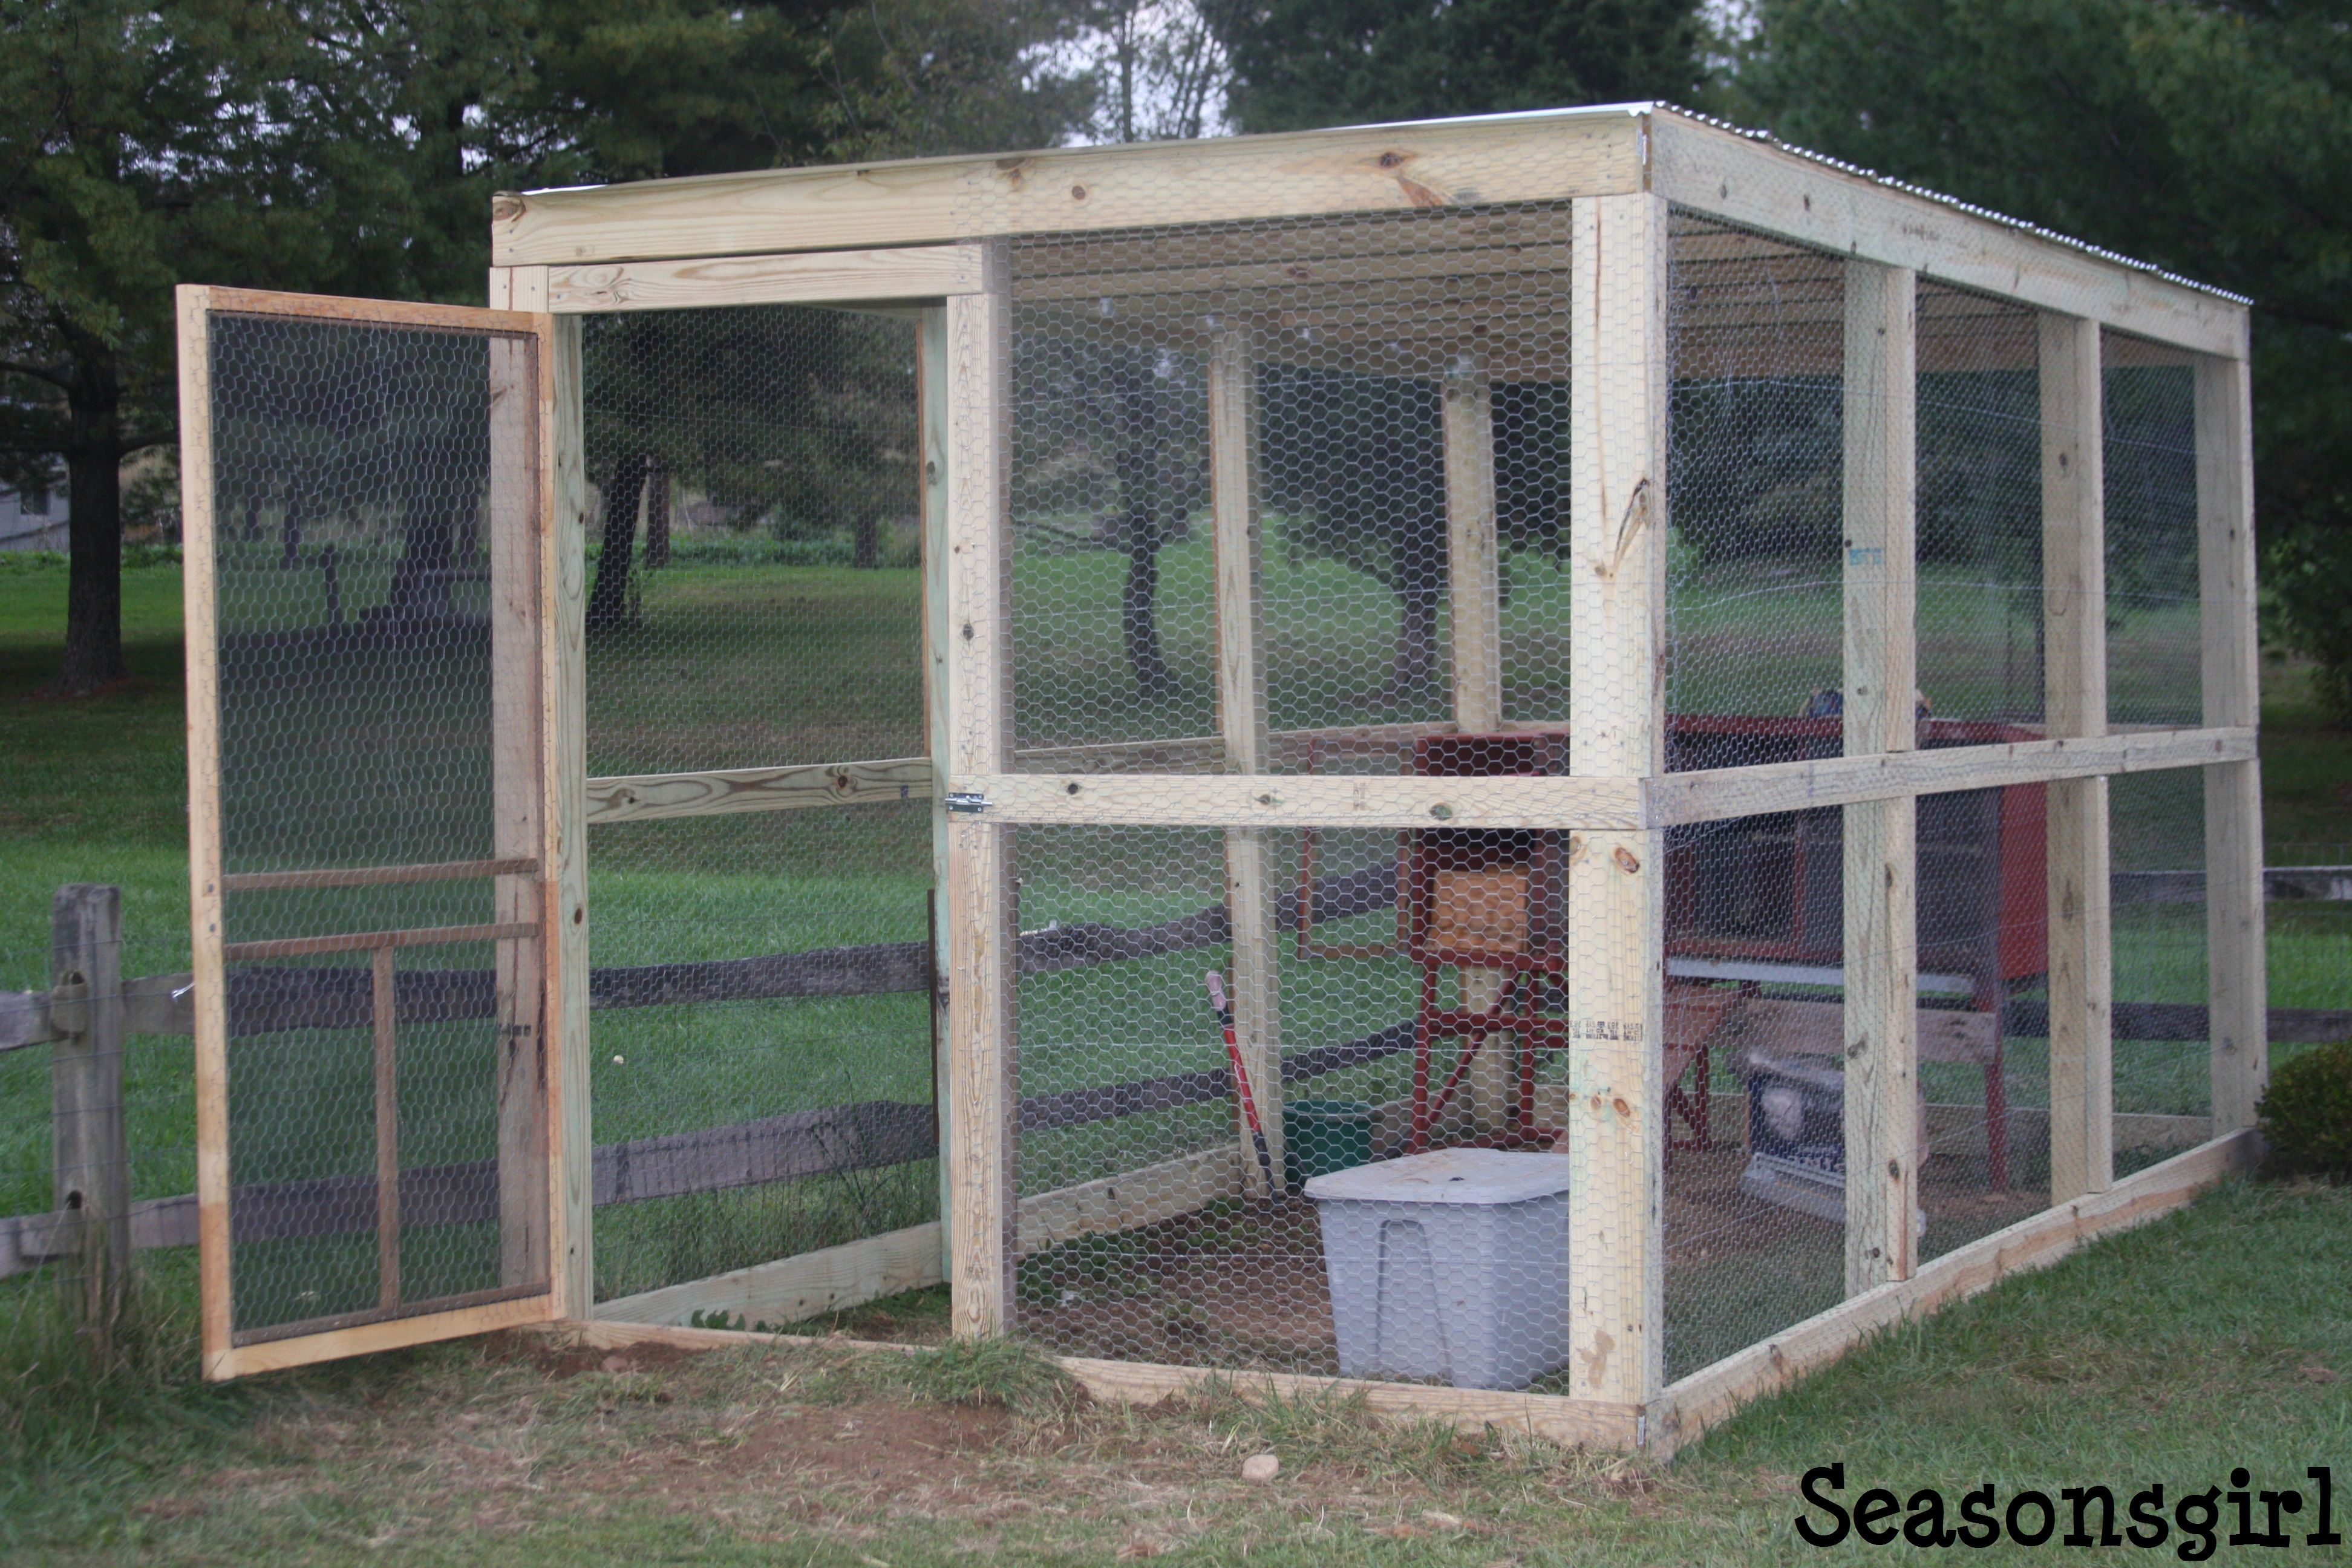 Diy Chicken Coops Plans That Are Easy To Build Seek Diy Easy